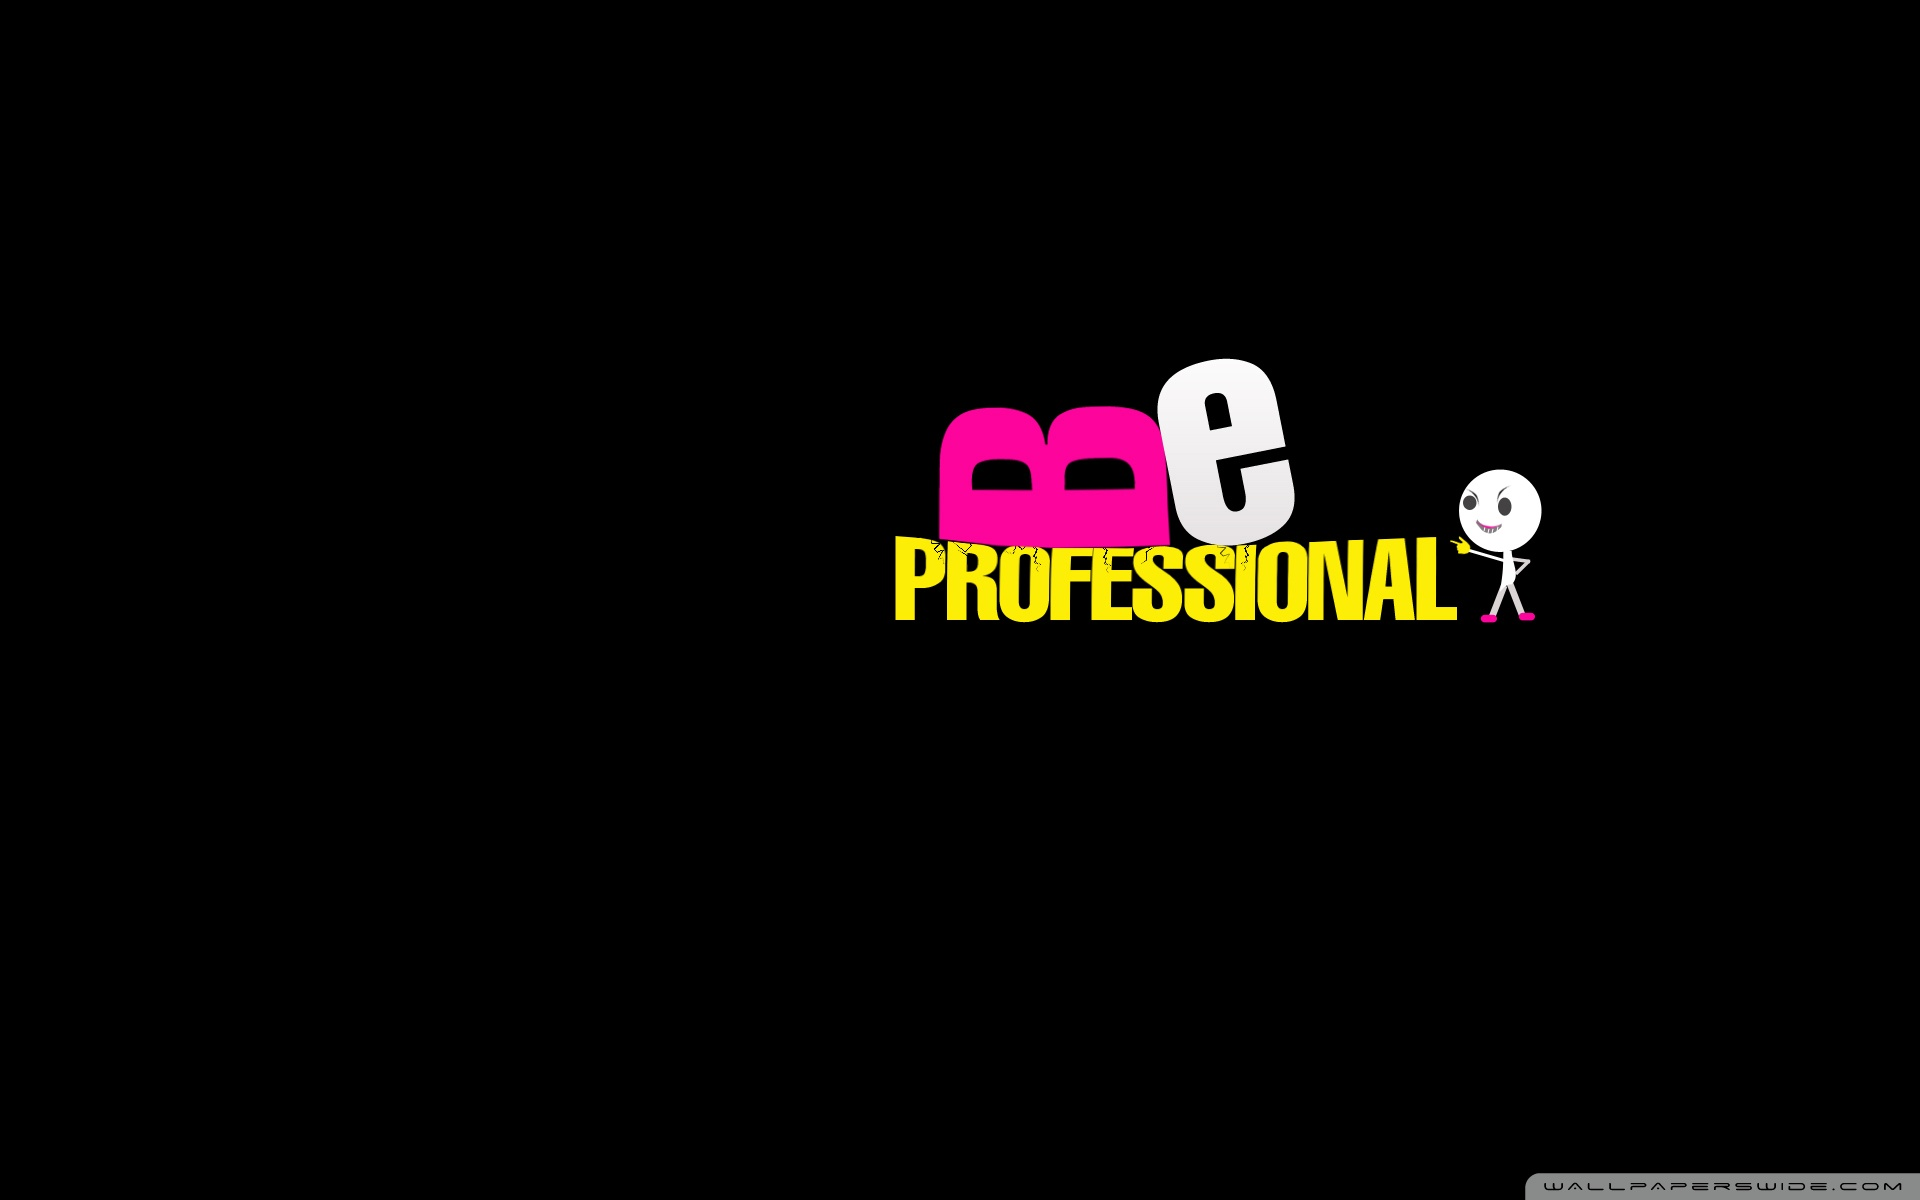 Professionals Wallpapers